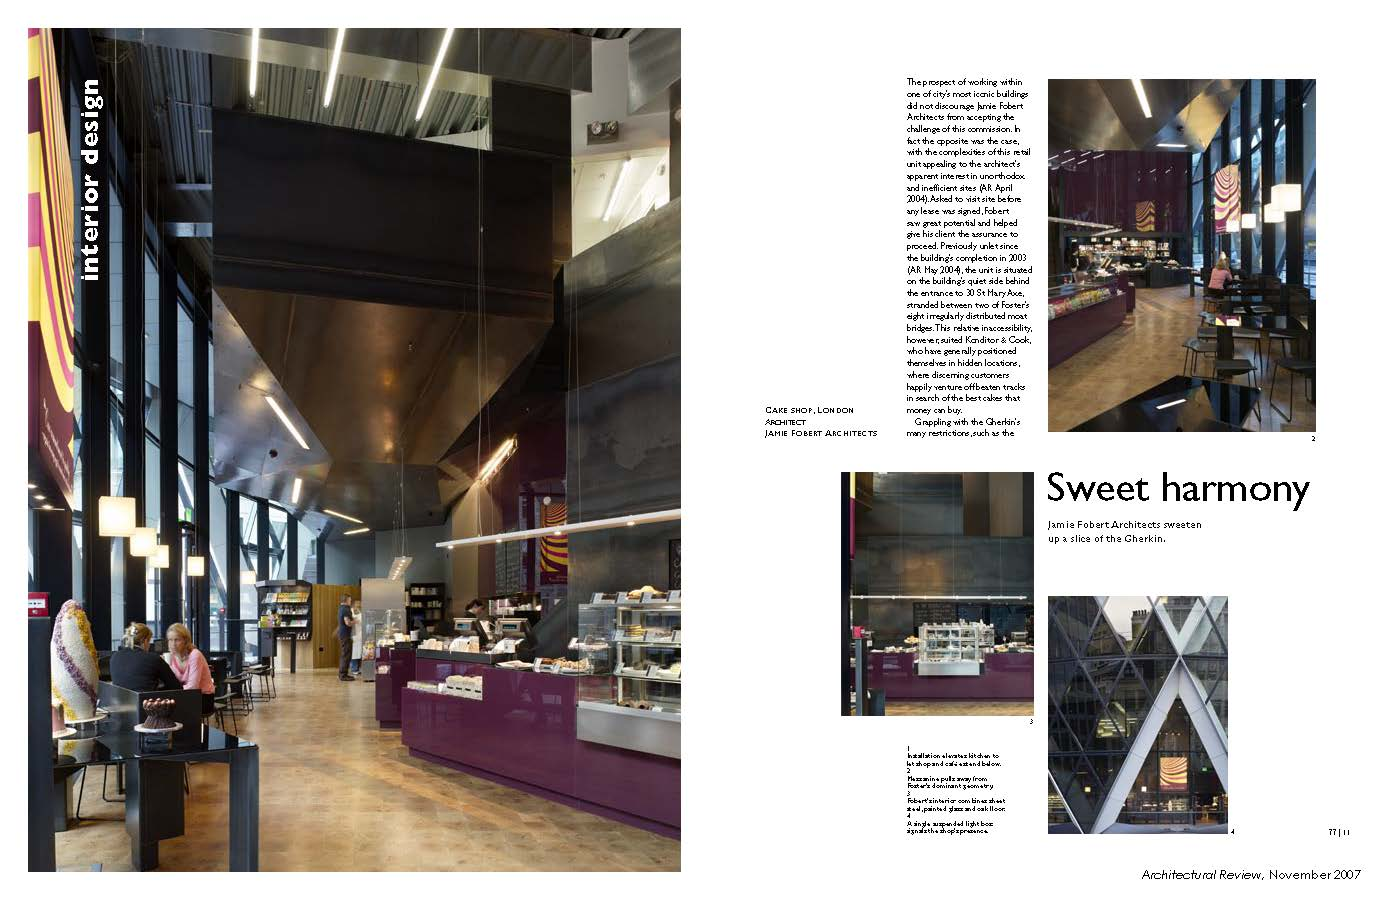 Sweet Harmony, Architectural Review, November 2007 Page 1